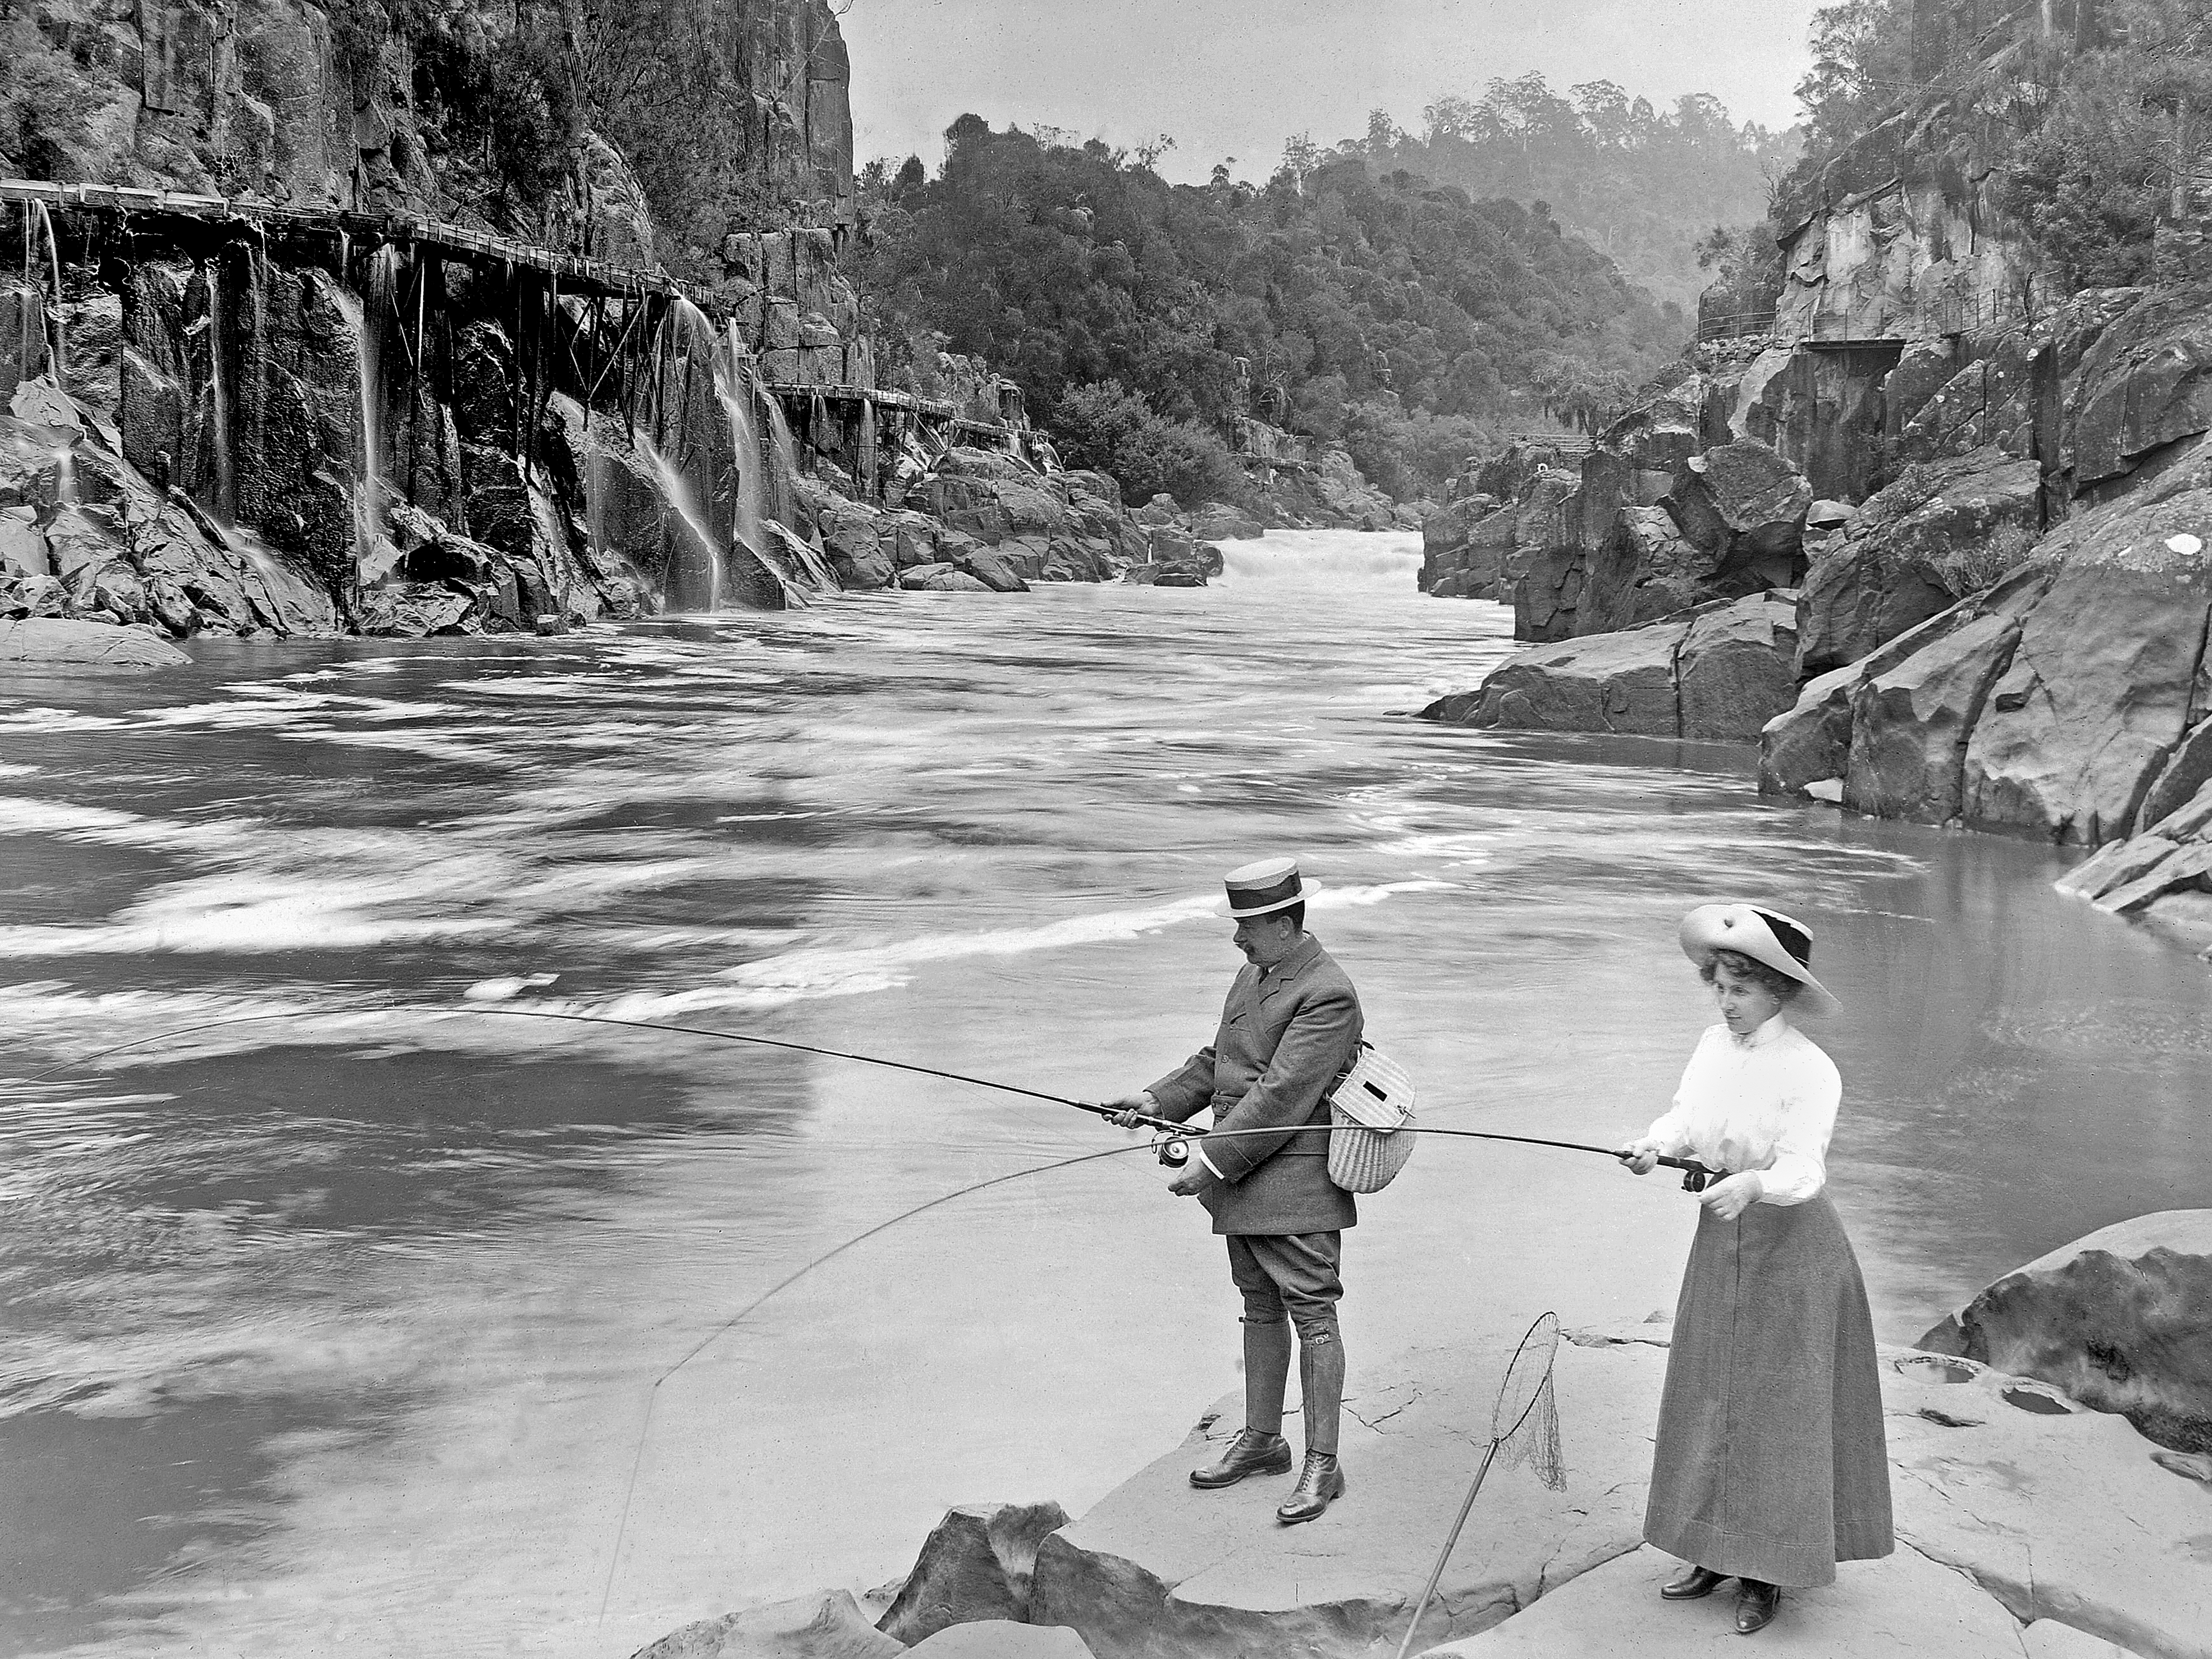 Fishing in the Gorge